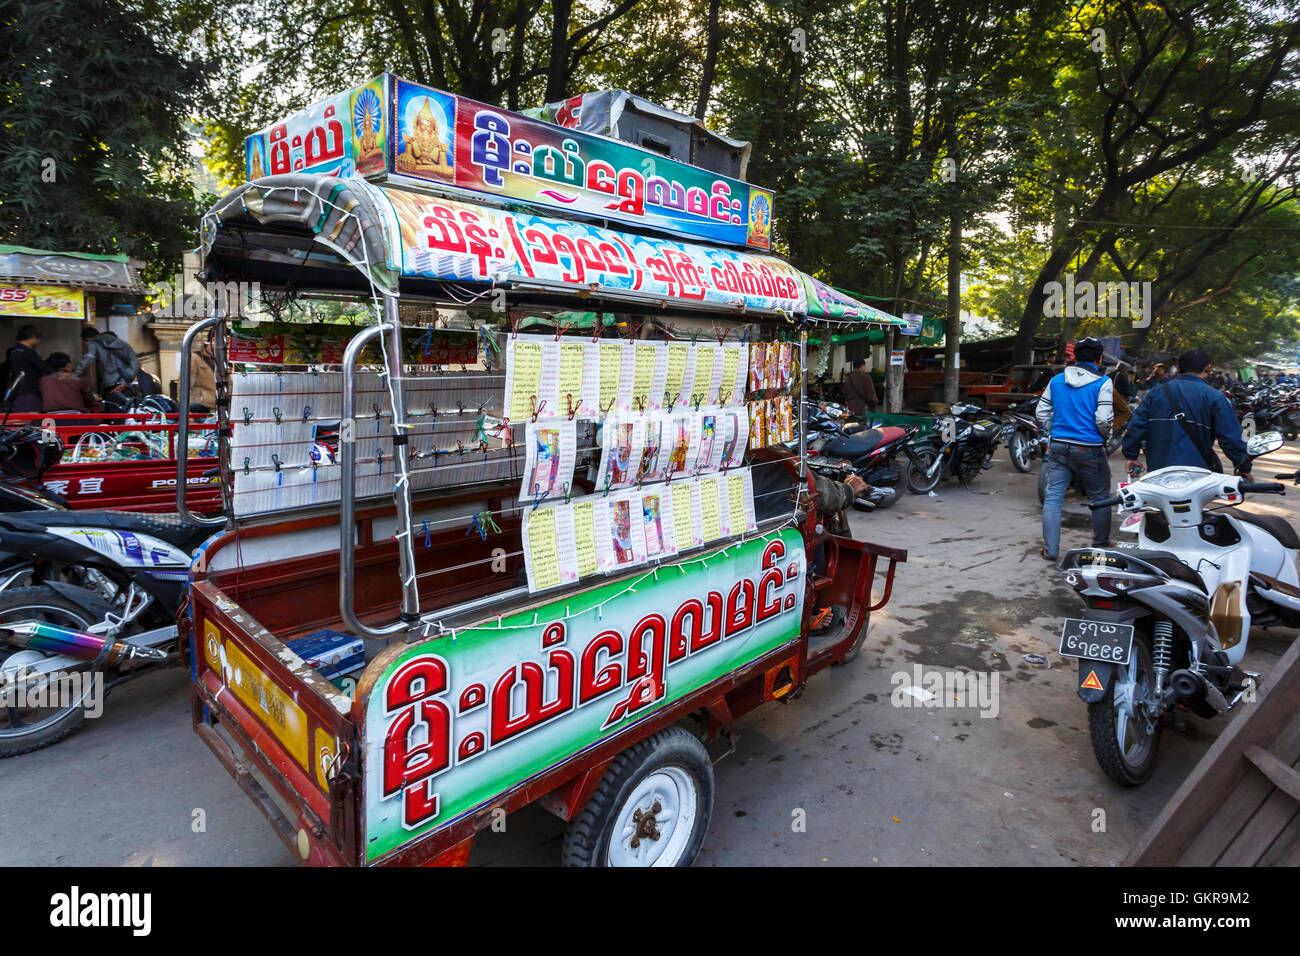 Three wheeled vehicle selling lottery tickets in the street at the